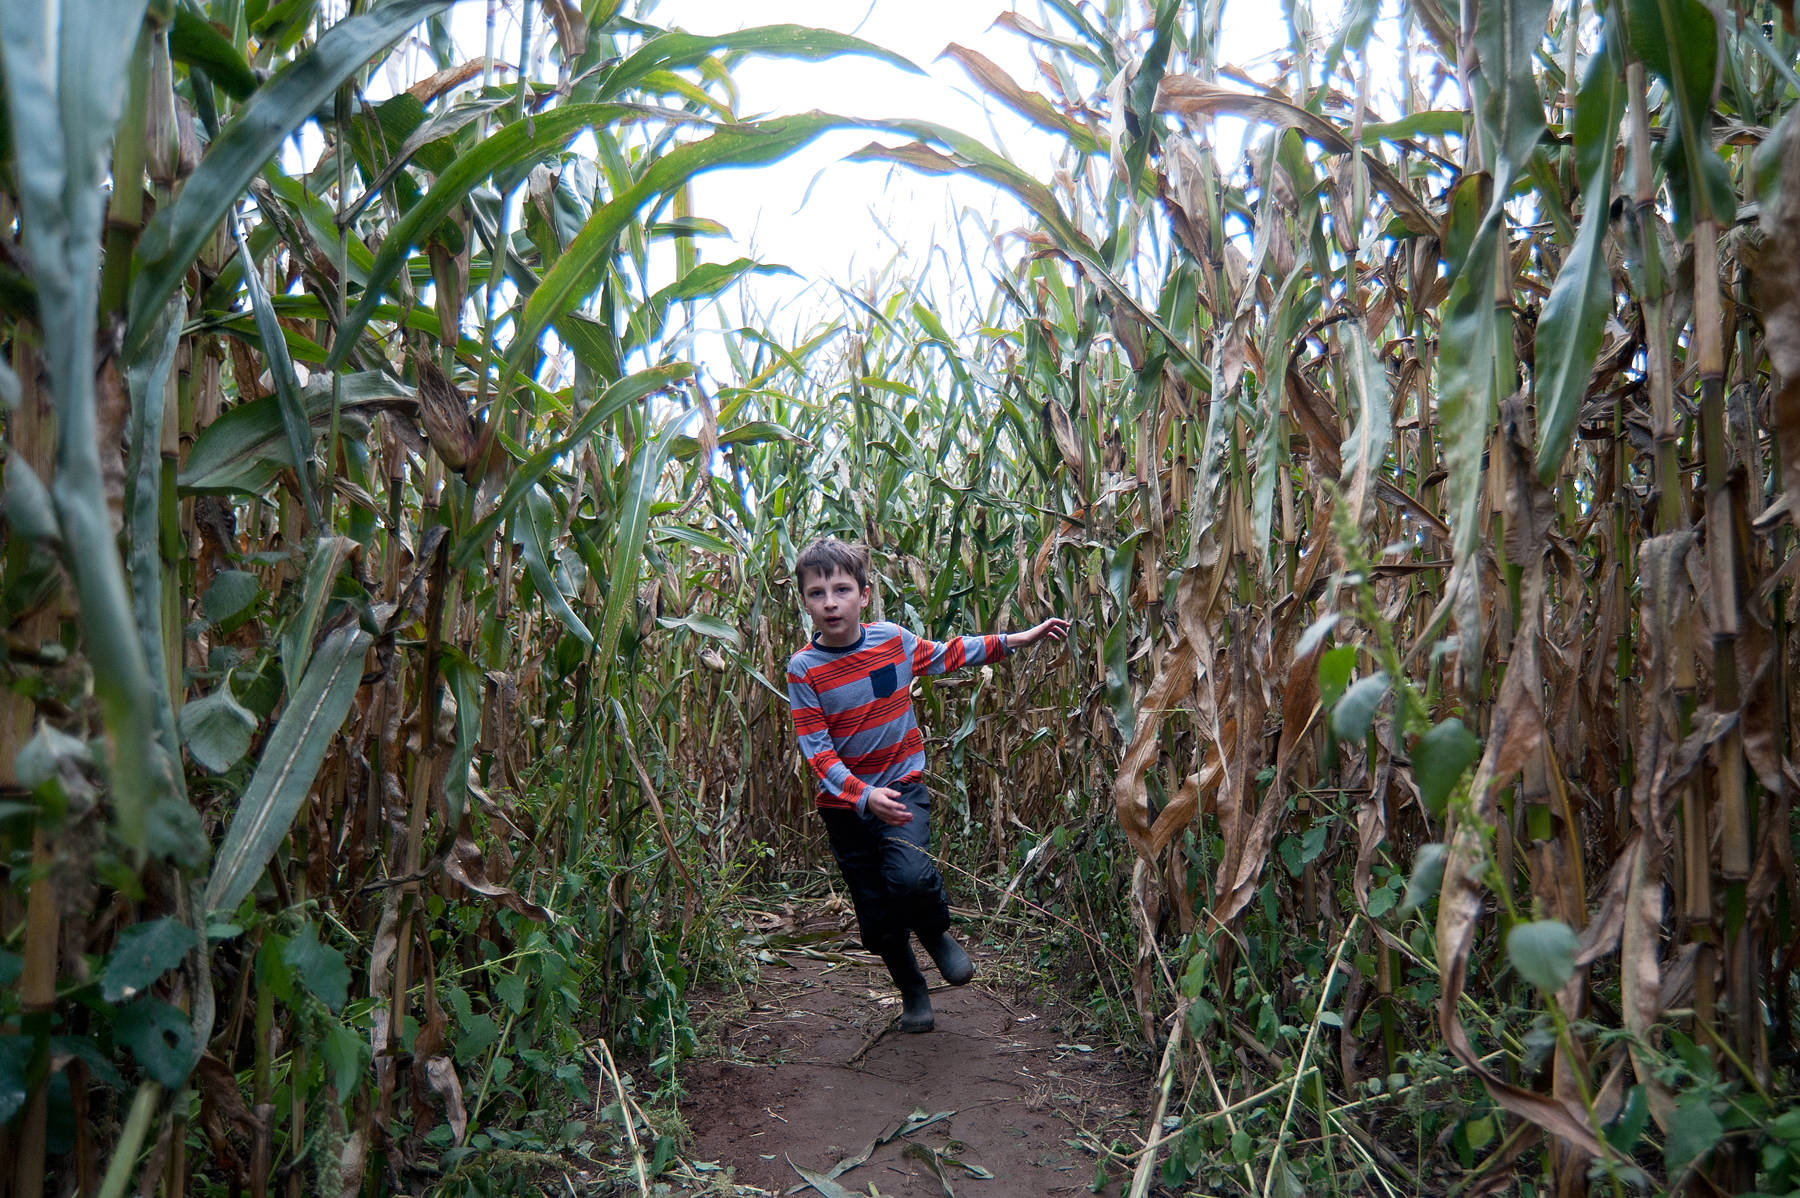 J.R. Rardon/PQB News file                                Harry Tkach of Parksville, 8, races through the corn during the annual Harvest Festival at Silver Meadows Farm in Errington in October.